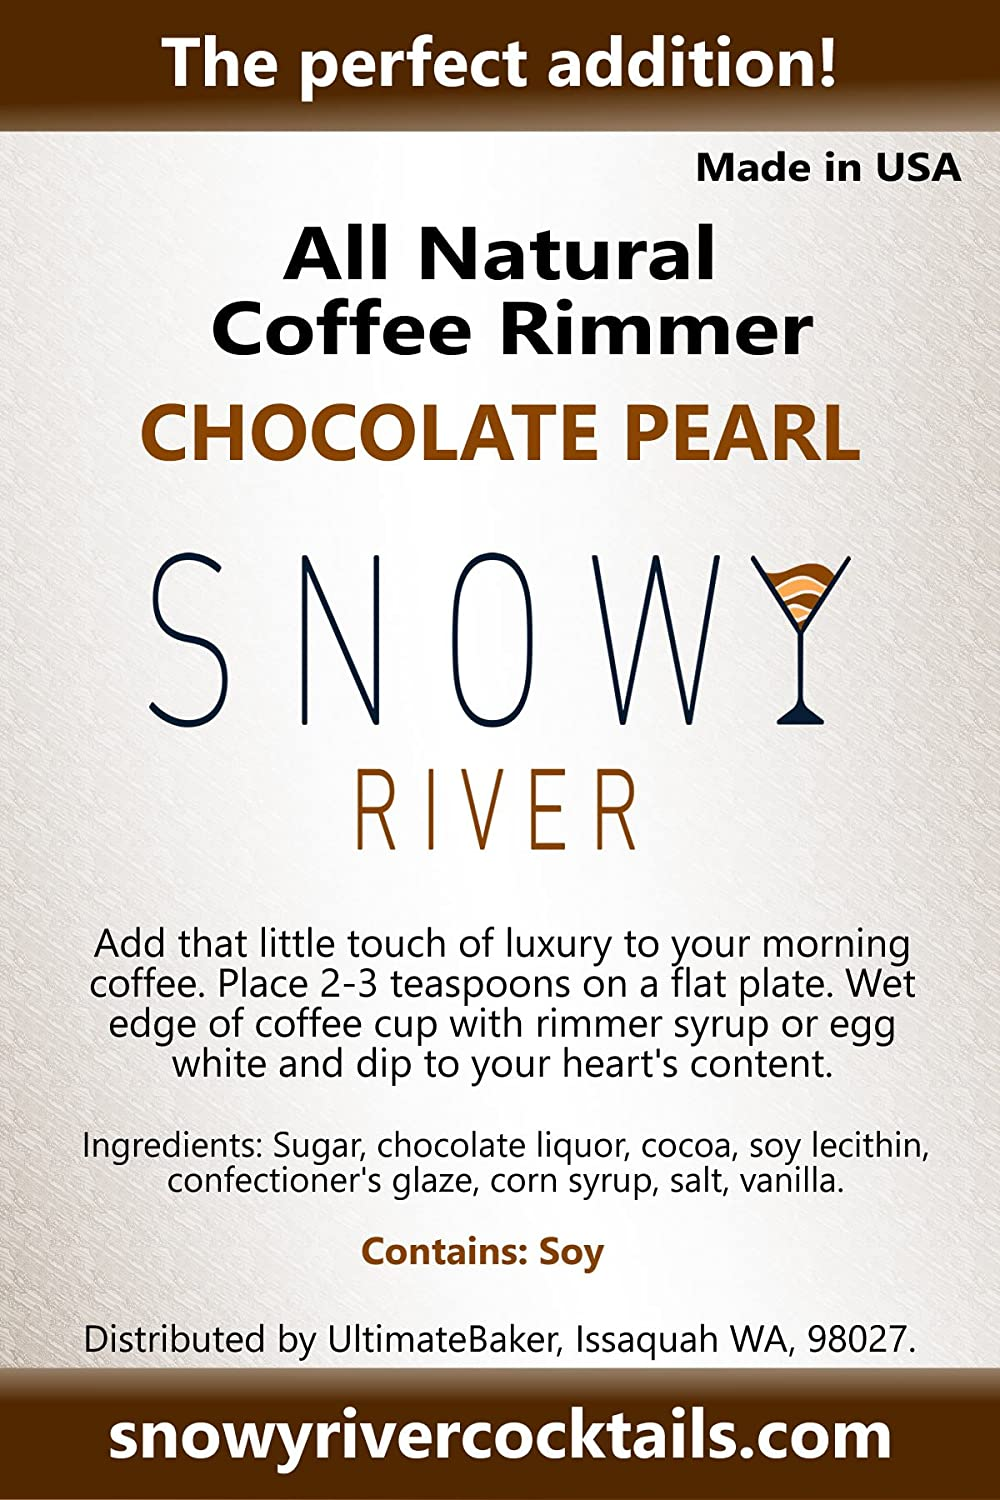 Chocolate Diamond, 1lb All Natural Chocolate Cocktail Sugar and Cocktail Rimer Snowy River Chocolate Coffee Rimmer